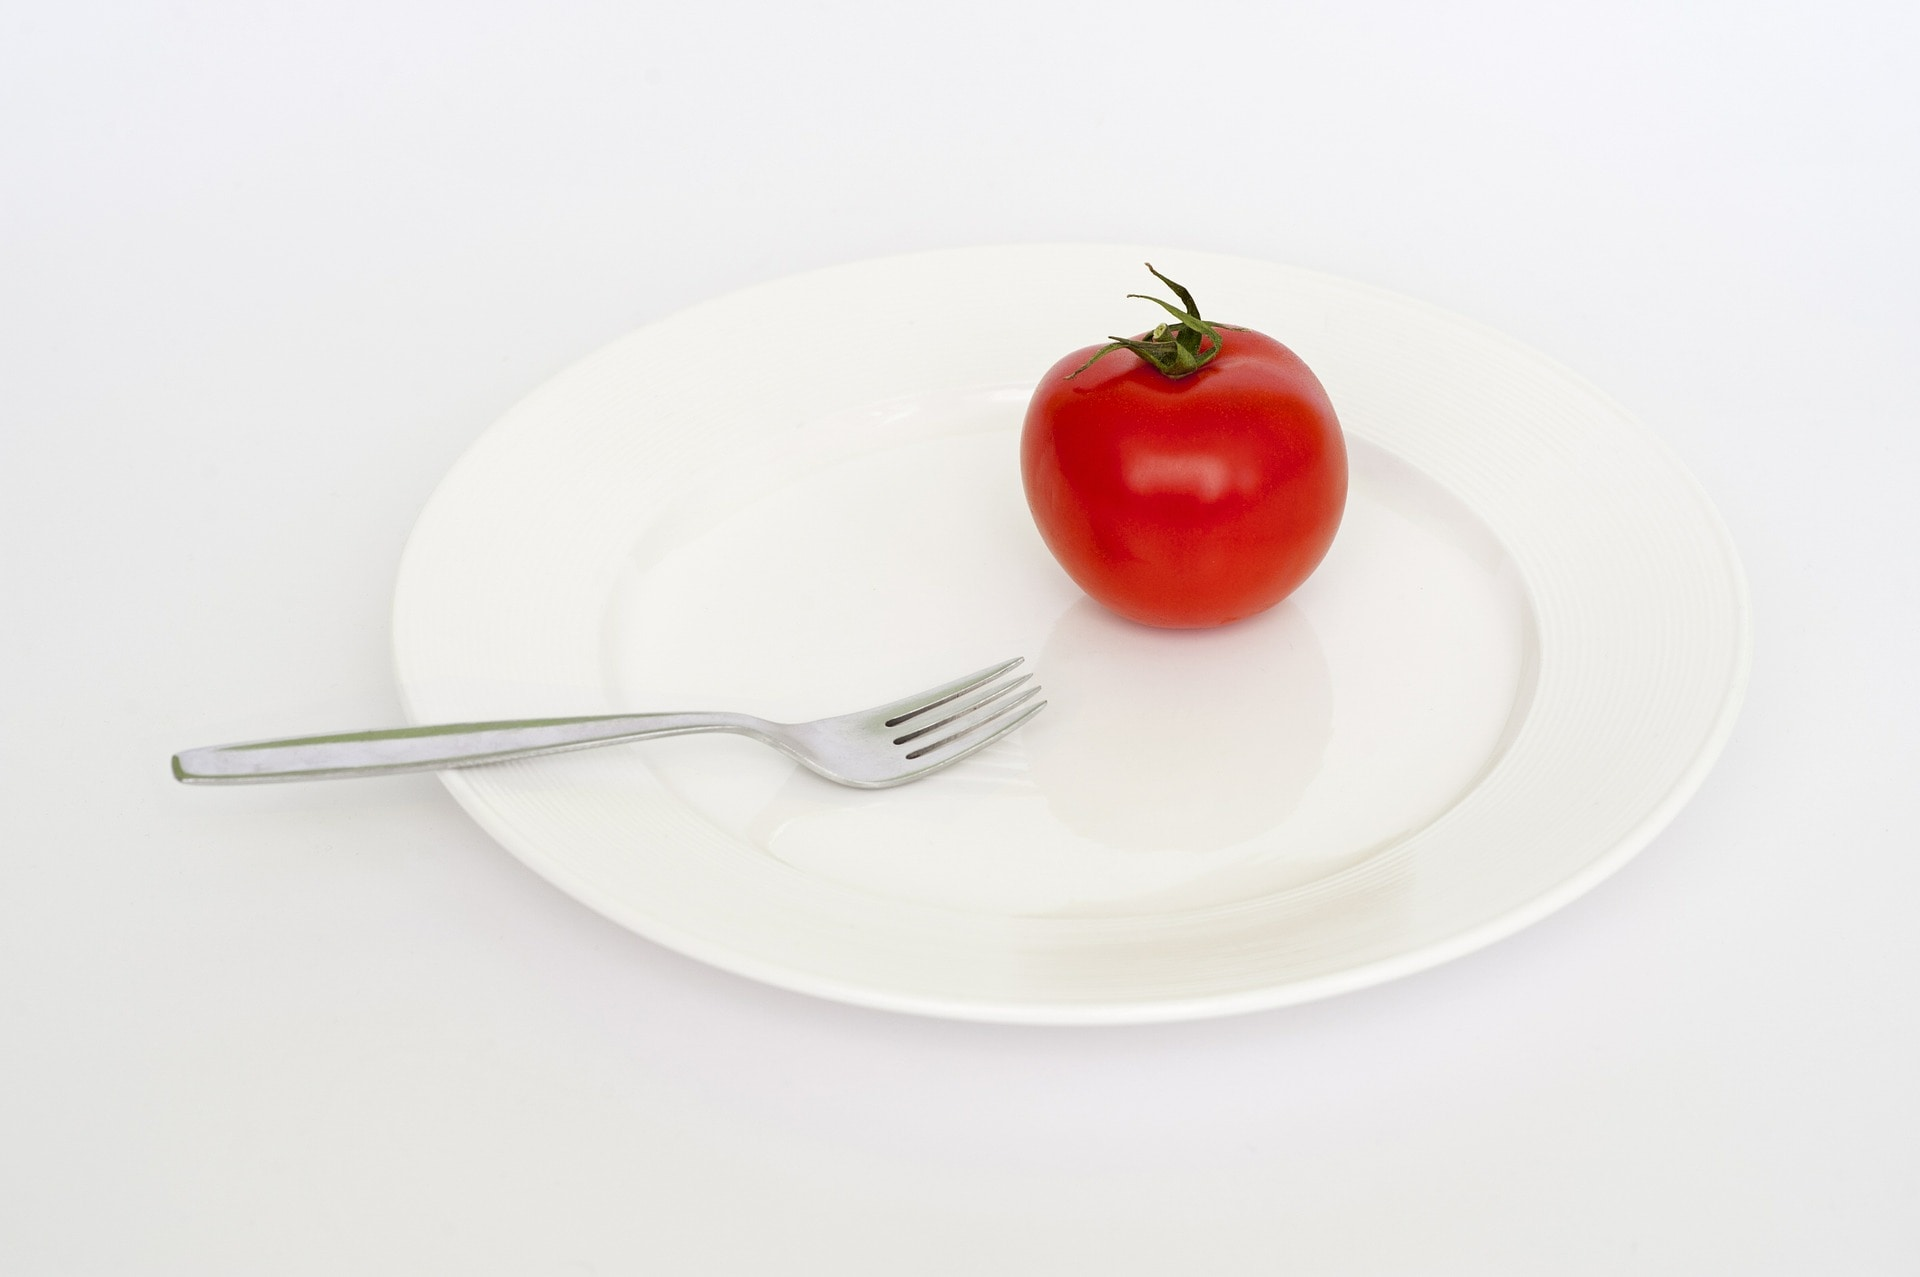 how-many-calories-to-lose-1-pound-tomato-on-plate